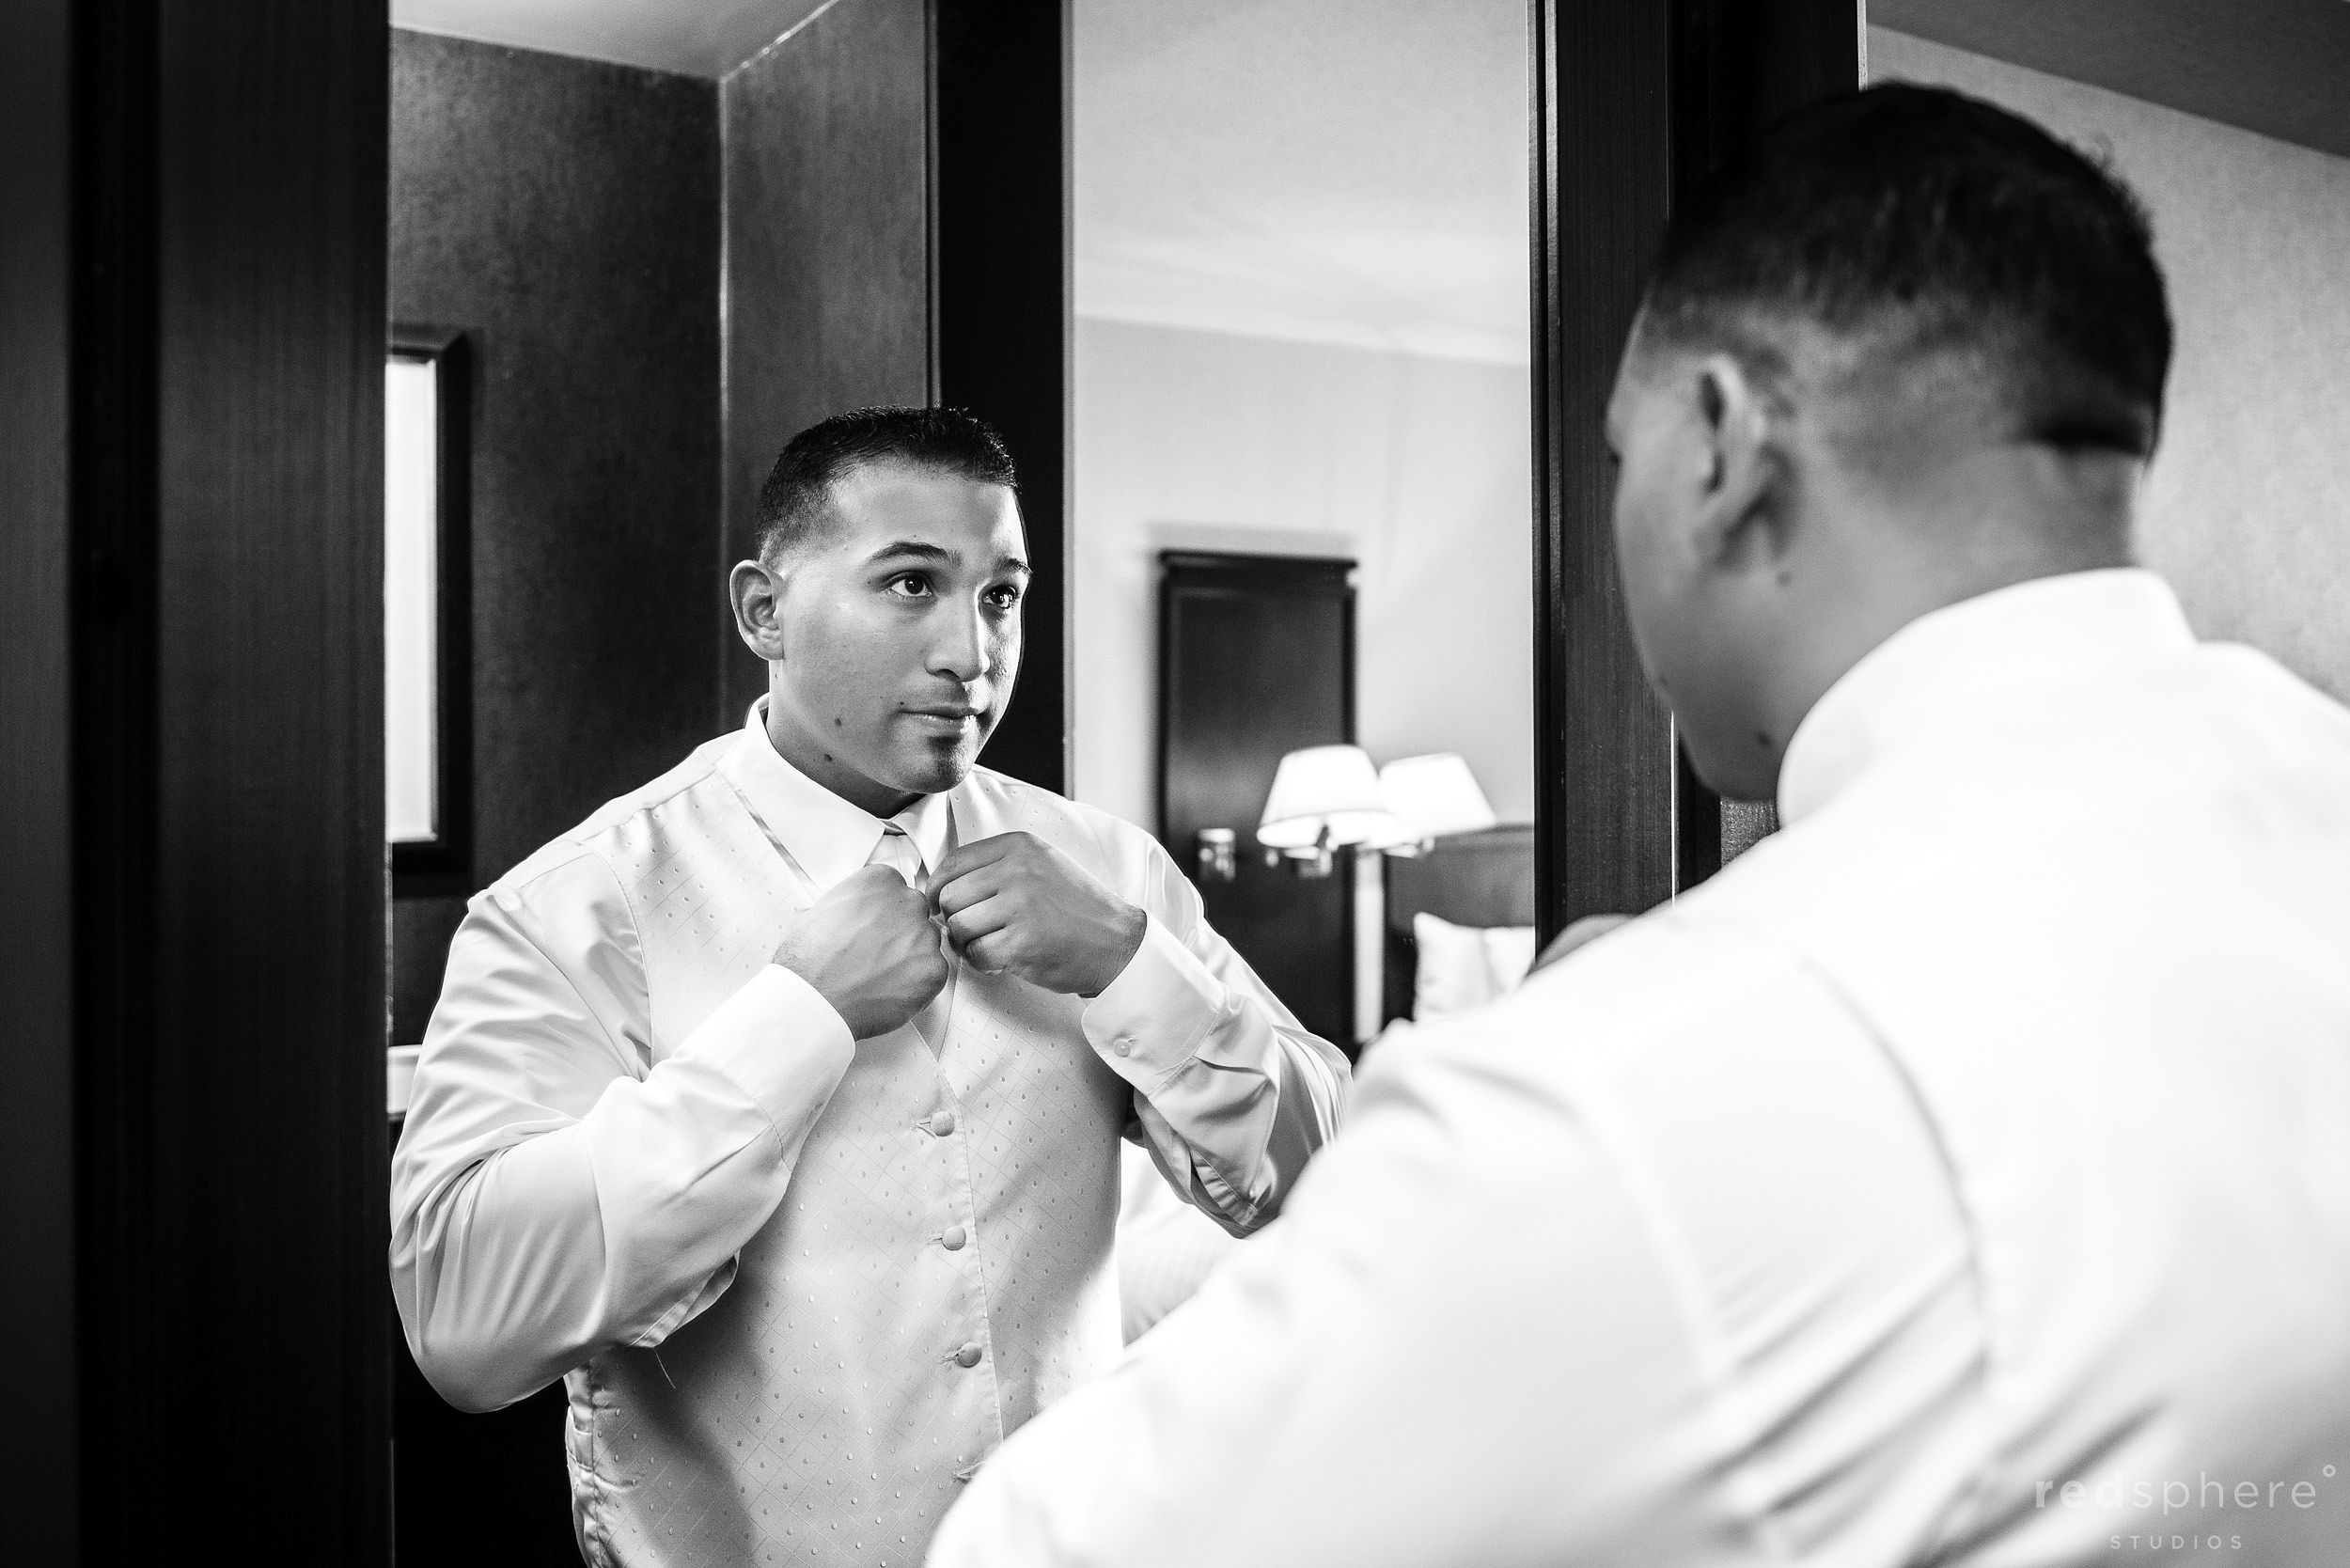 Groom Putting The Finishing Touches On Tie, Black and White